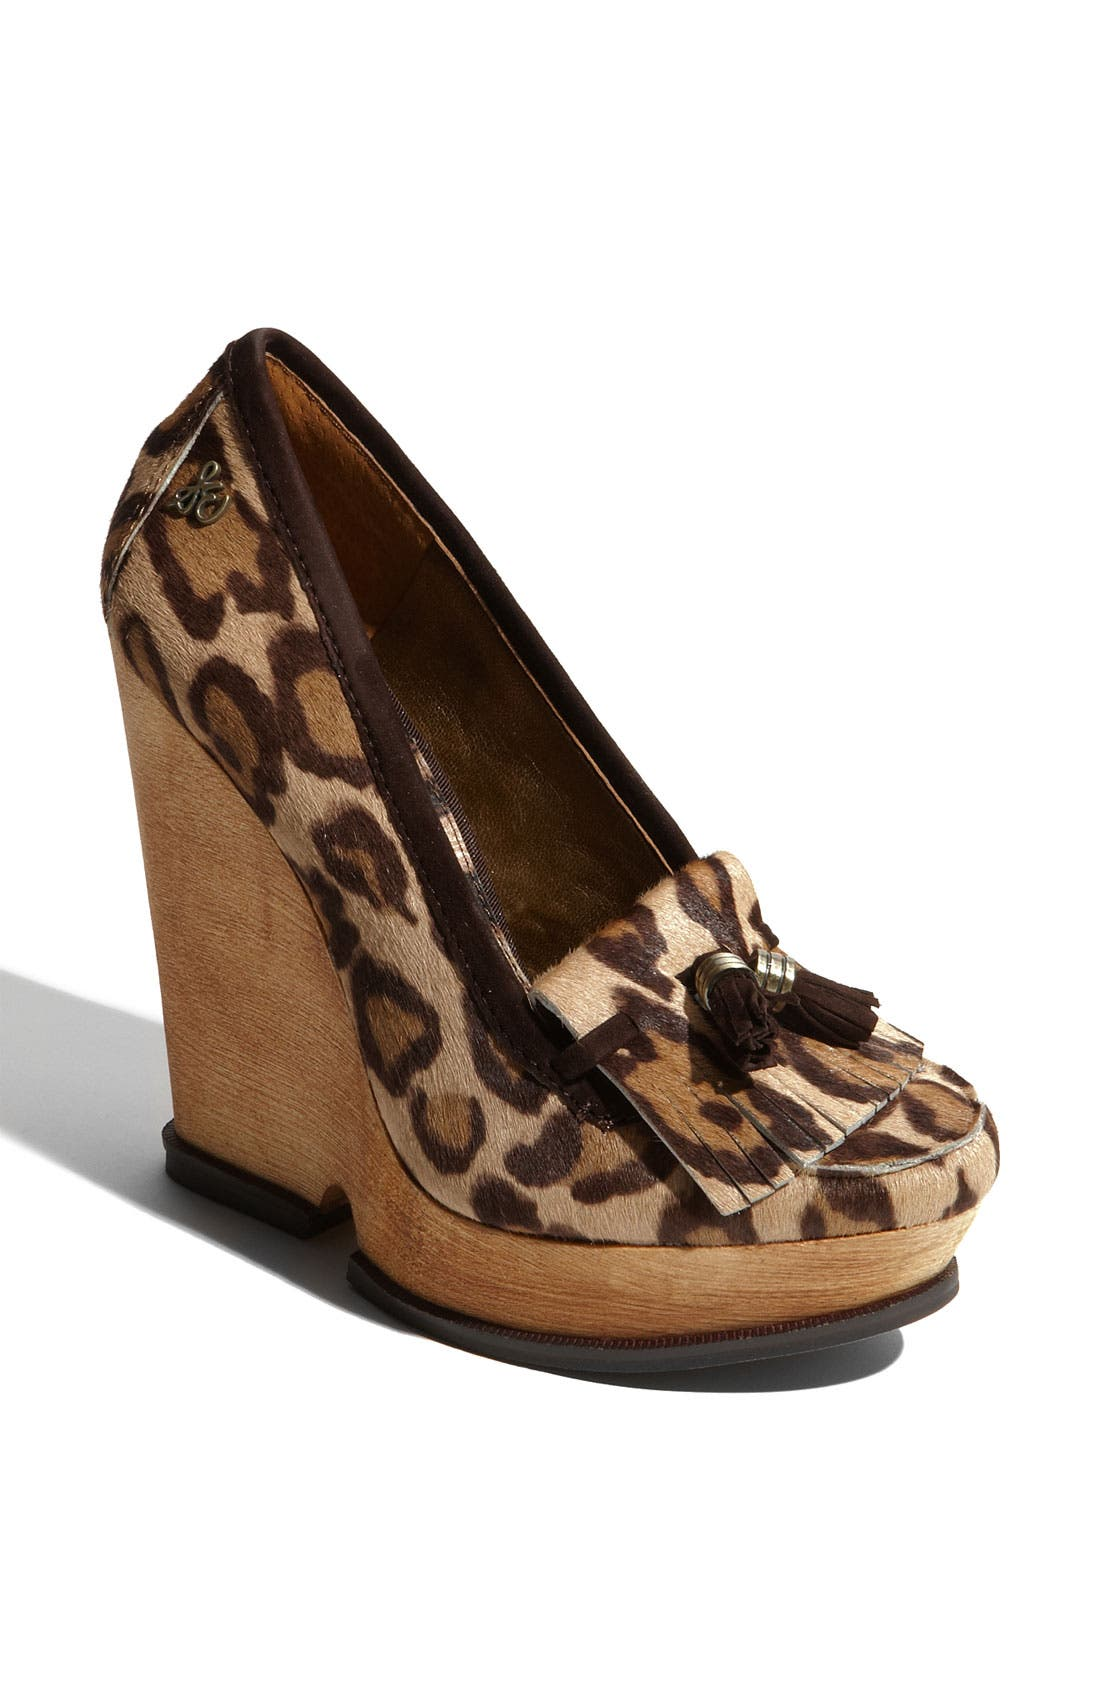 Alternate Image 1 Selected - Sam Edelman 'Wesley' Wedge